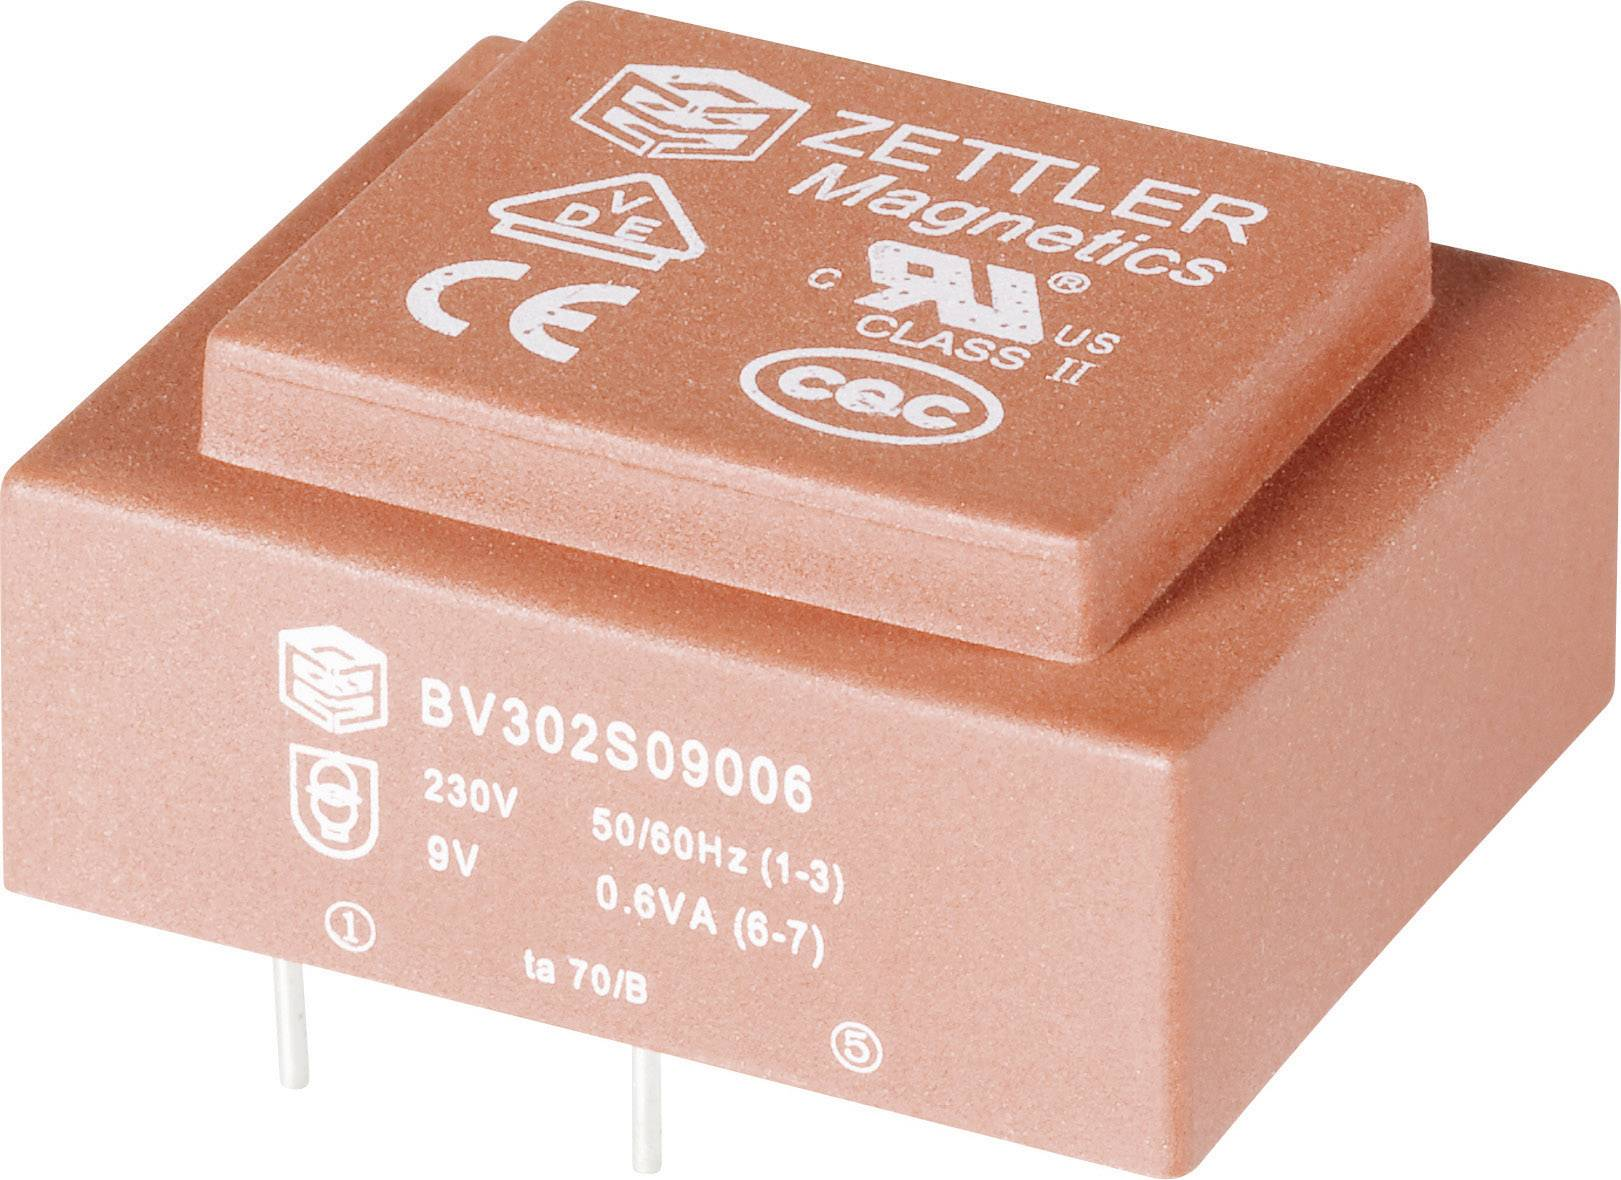 Transformátor do DPS Zettler Magnetics El30, 230 V/24 V, 25 mA, 1 VA